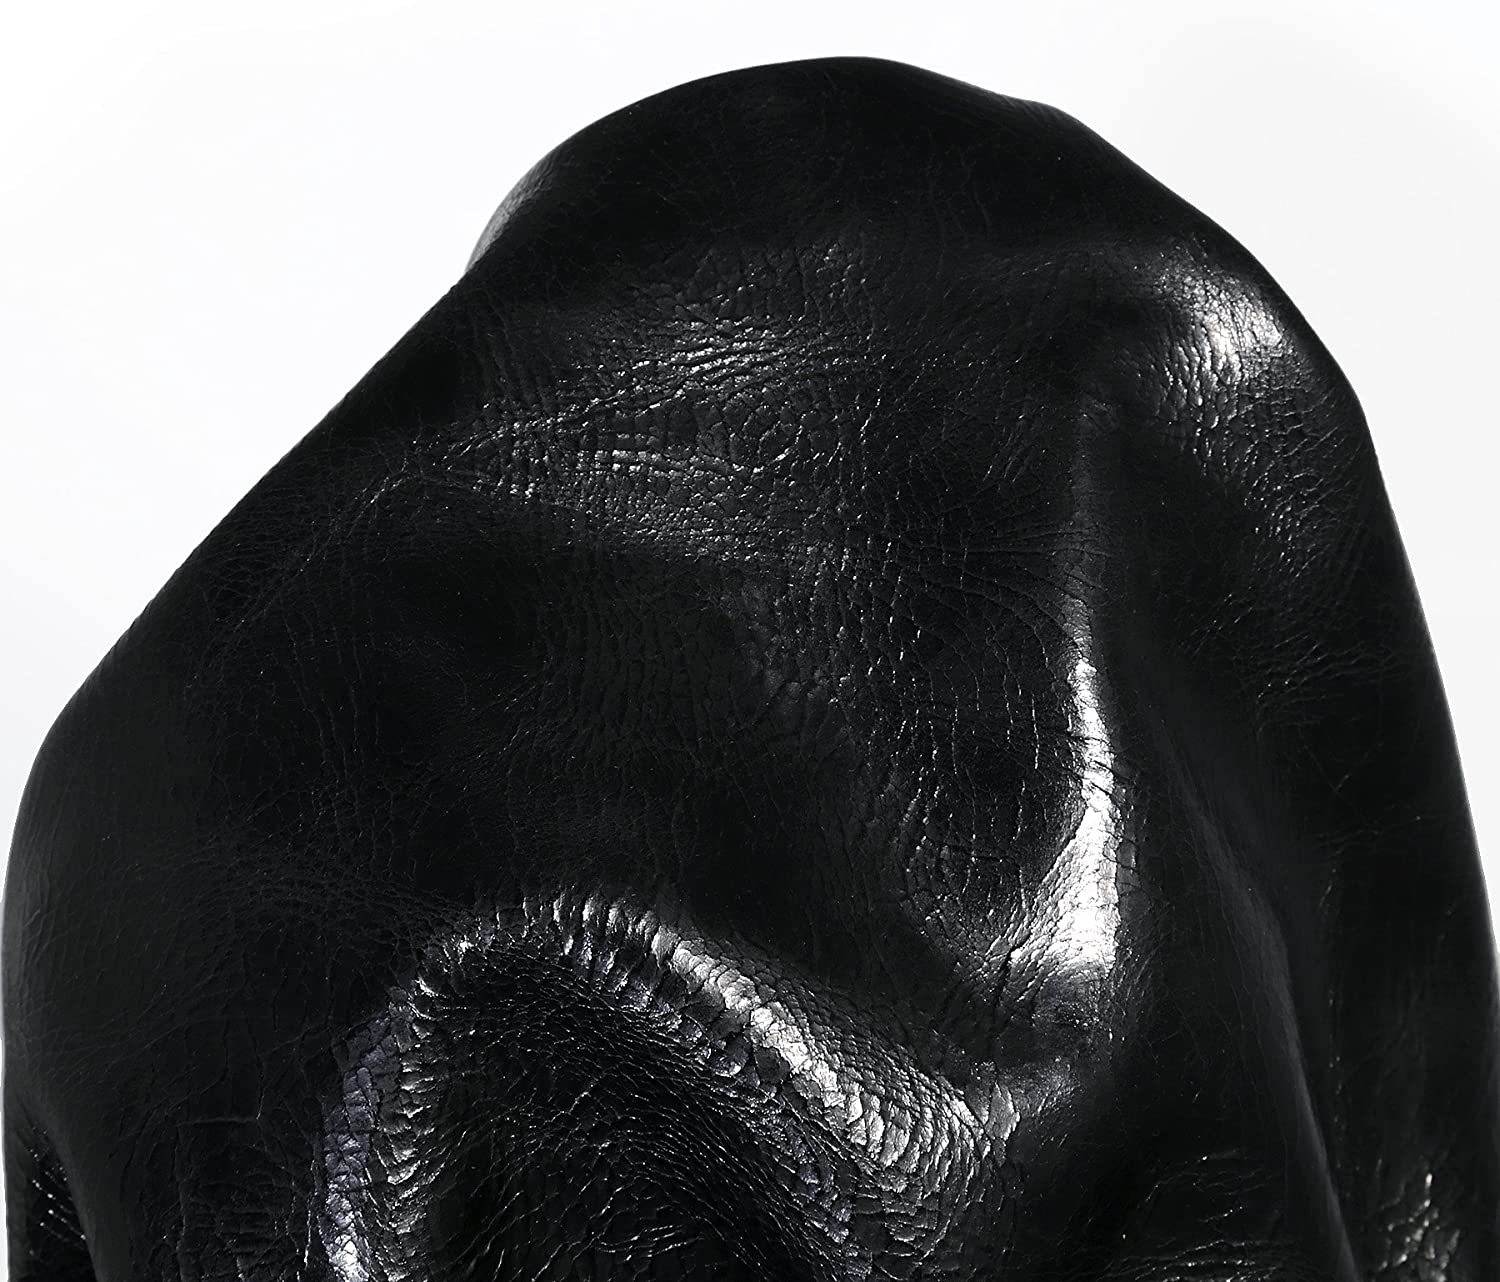 NAT Leather Black 18-22 Square Feet Soft Upholstery Motorcycle Glazed Cowhide Genuine Cow Leather Skin Hide Also for Chaps Tooling Crafting